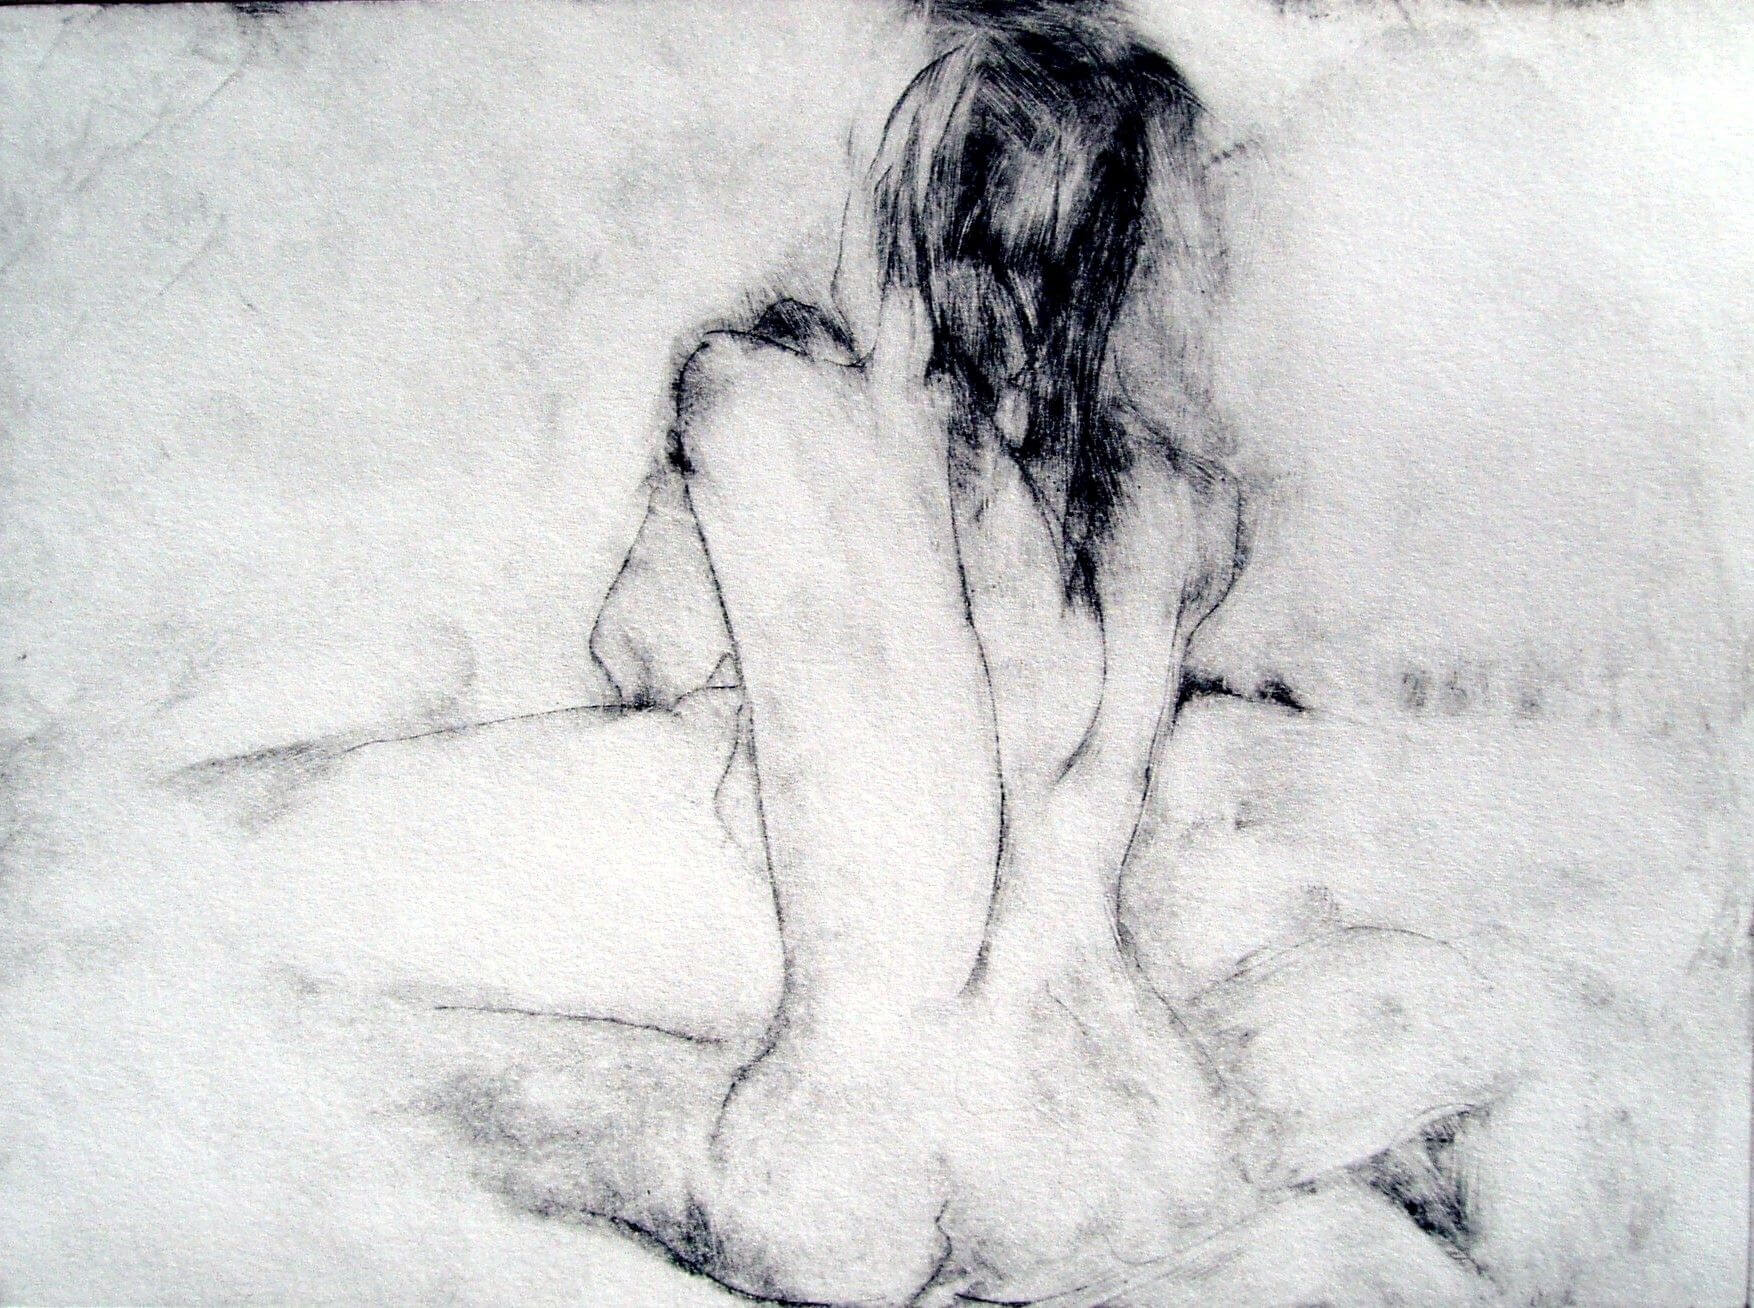 Untitled - drawing, drypoint etching on paper by artist Neva Bergemann